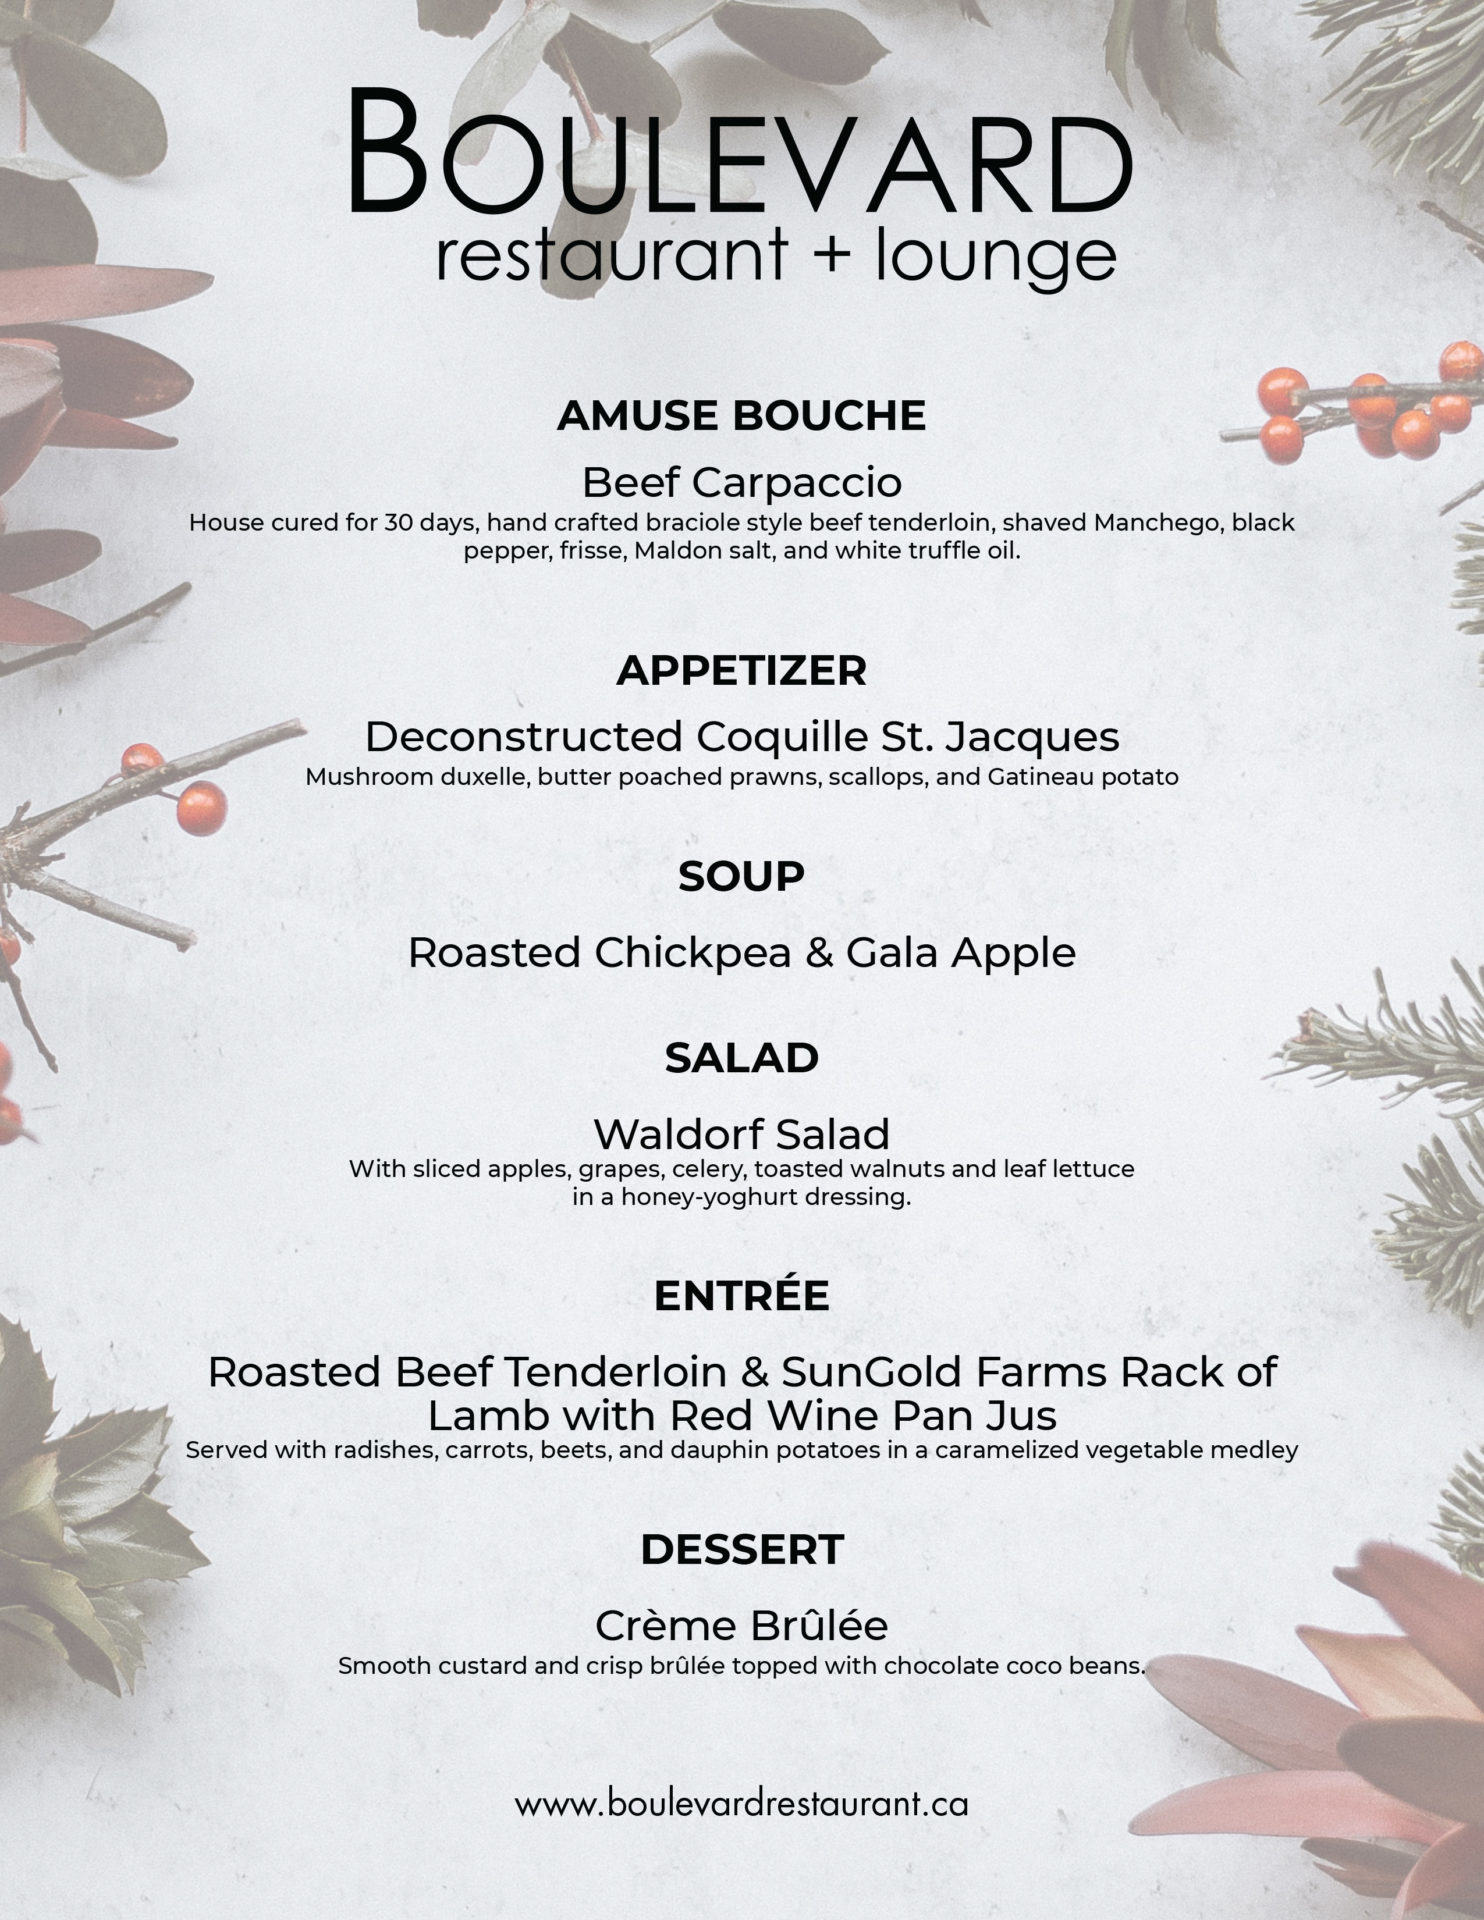 Boulevard Restaurant festive menu for a private function designed by Jay Gervais